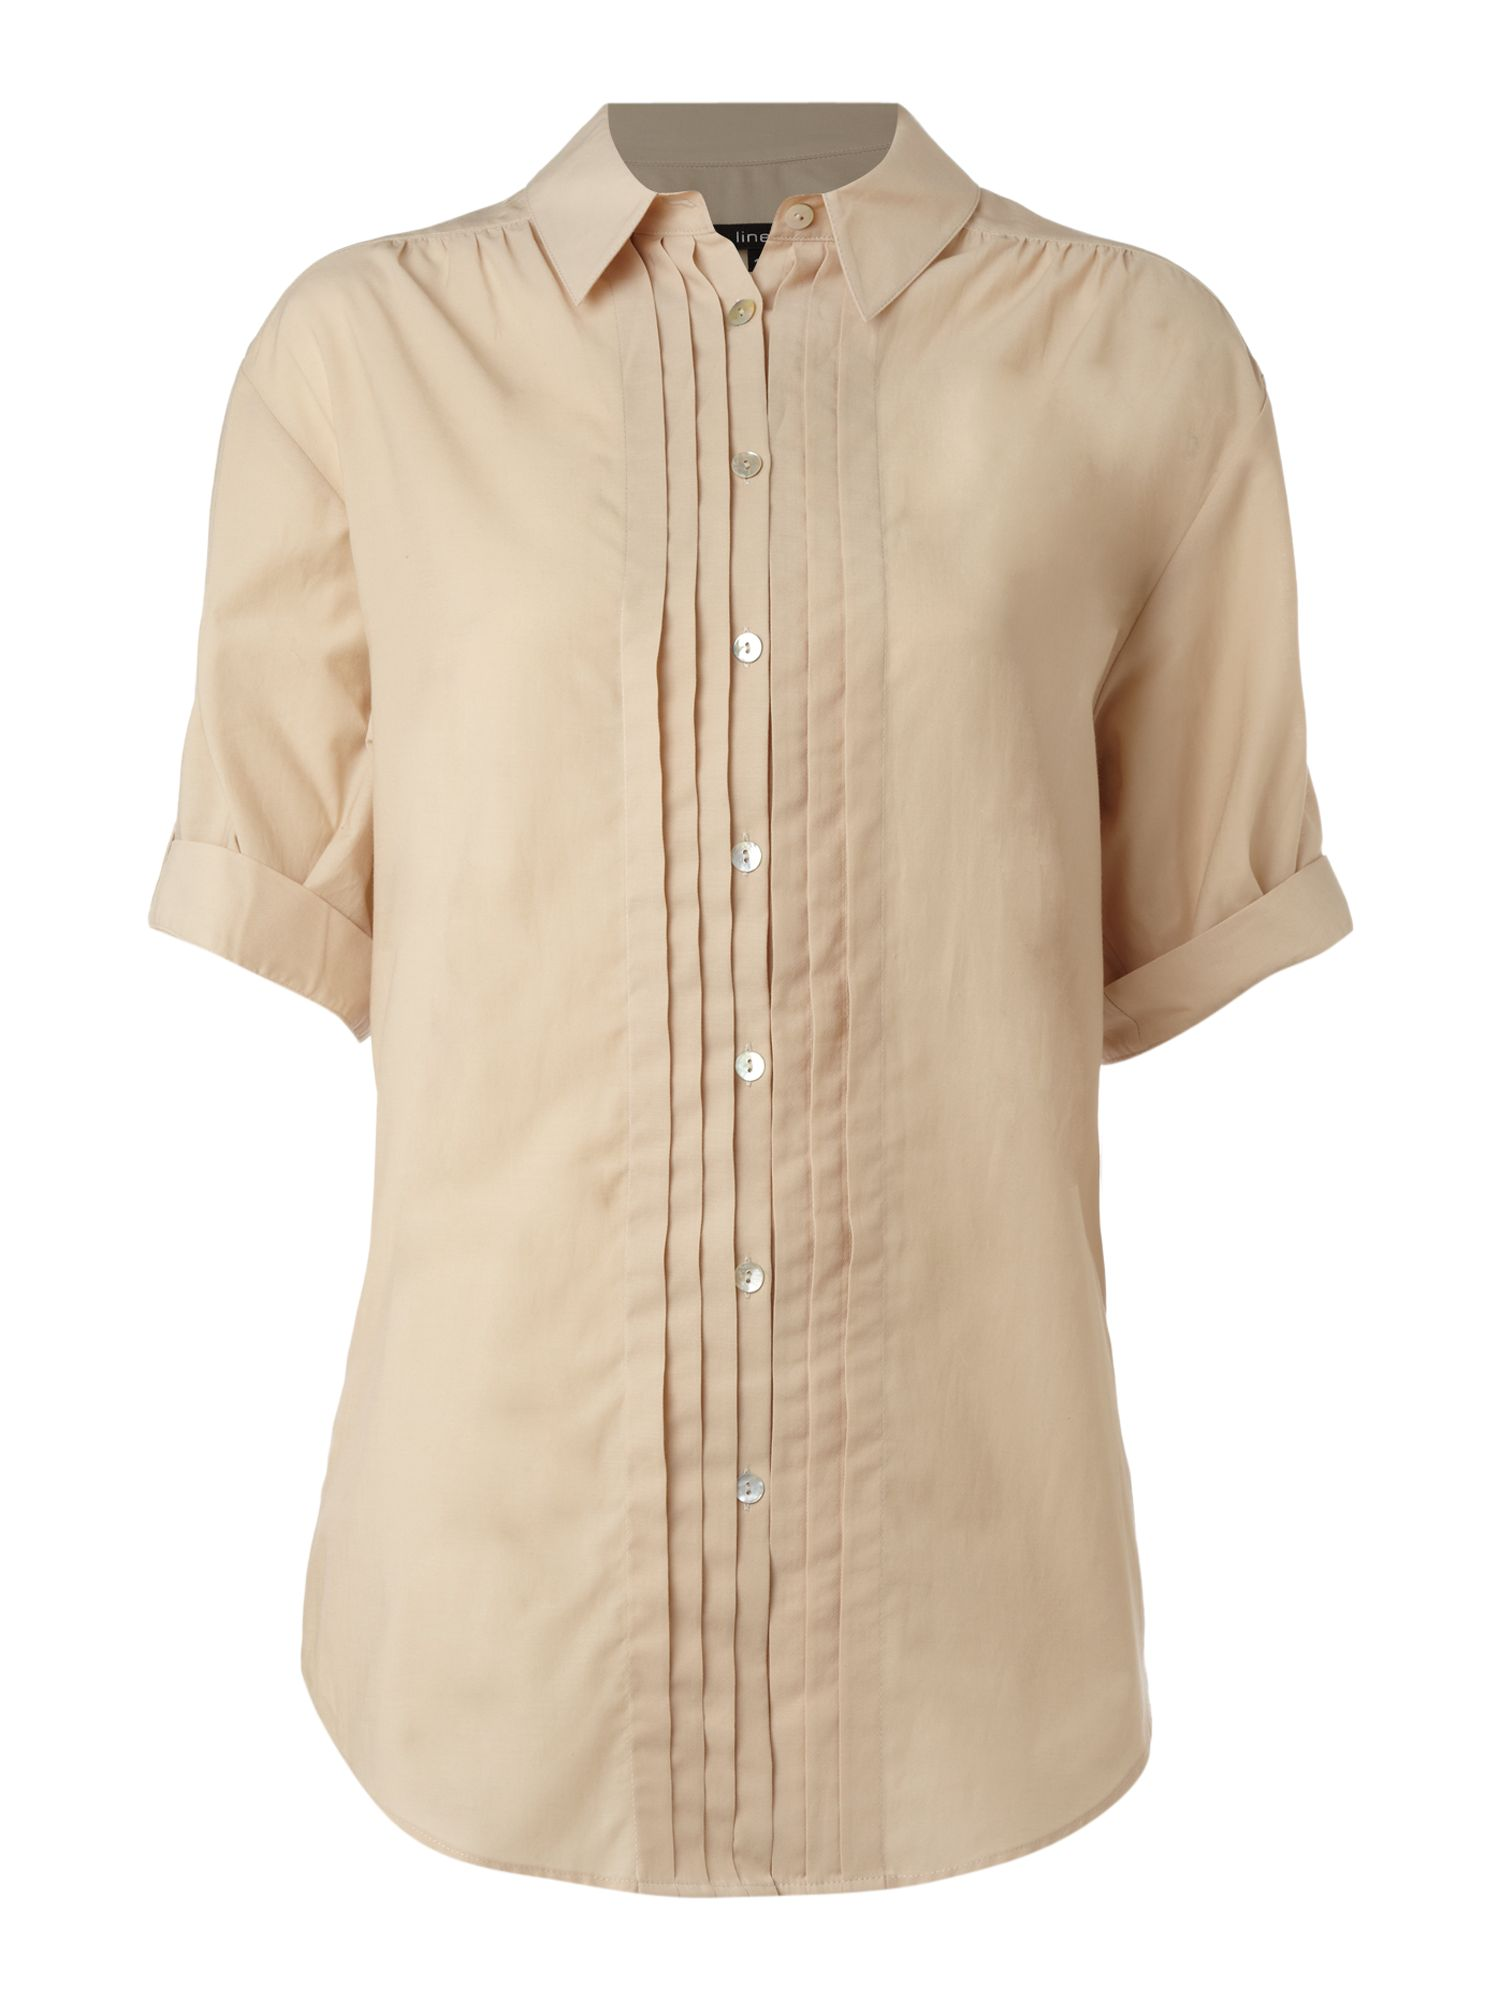 Linea Pintuck blouse - Natural product image